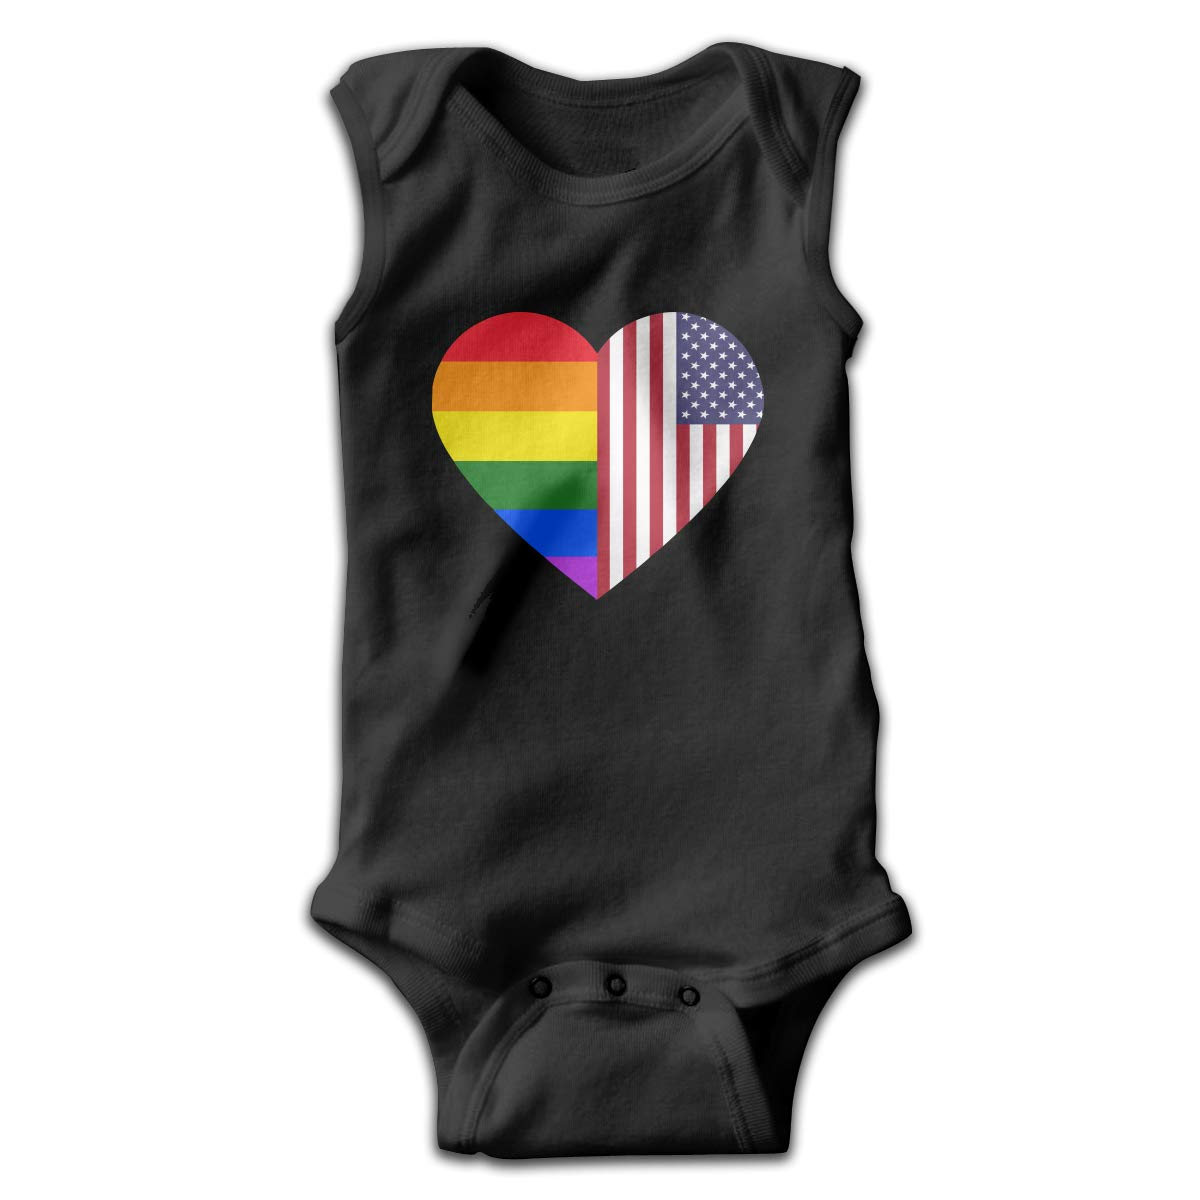 LGBT Rainbow American Flag Heart Baby Boys Girls Infant Crawling Suit Sleeveless Romper Bodysuit Rompers